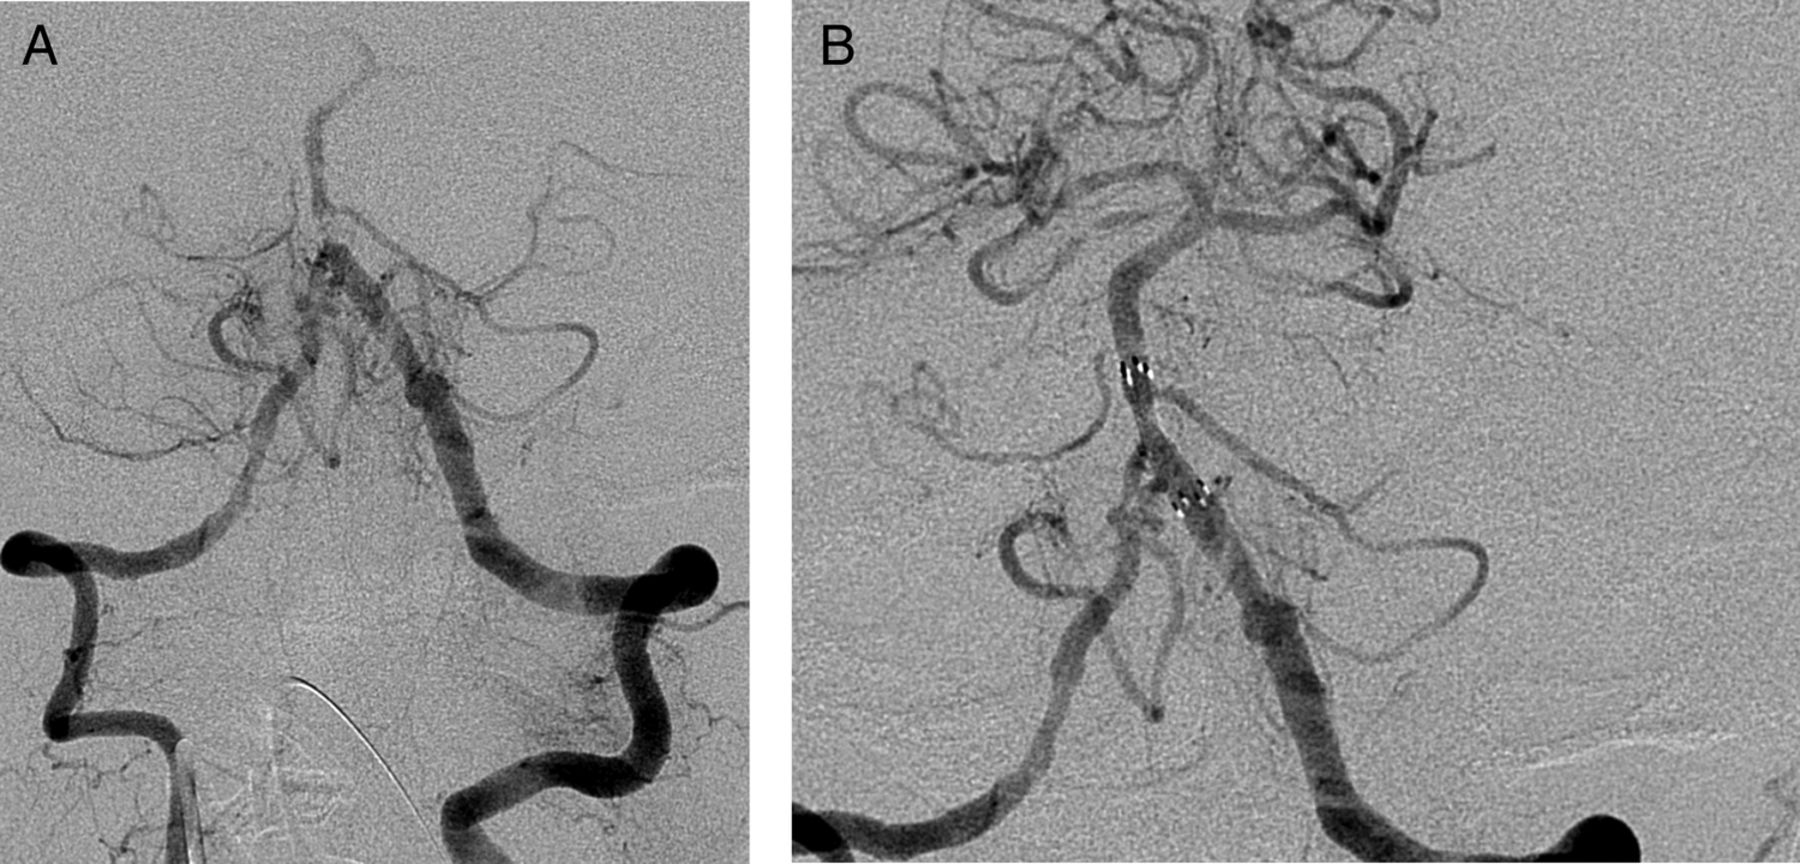 Endovascular treatment for AIS with underlying ICAD